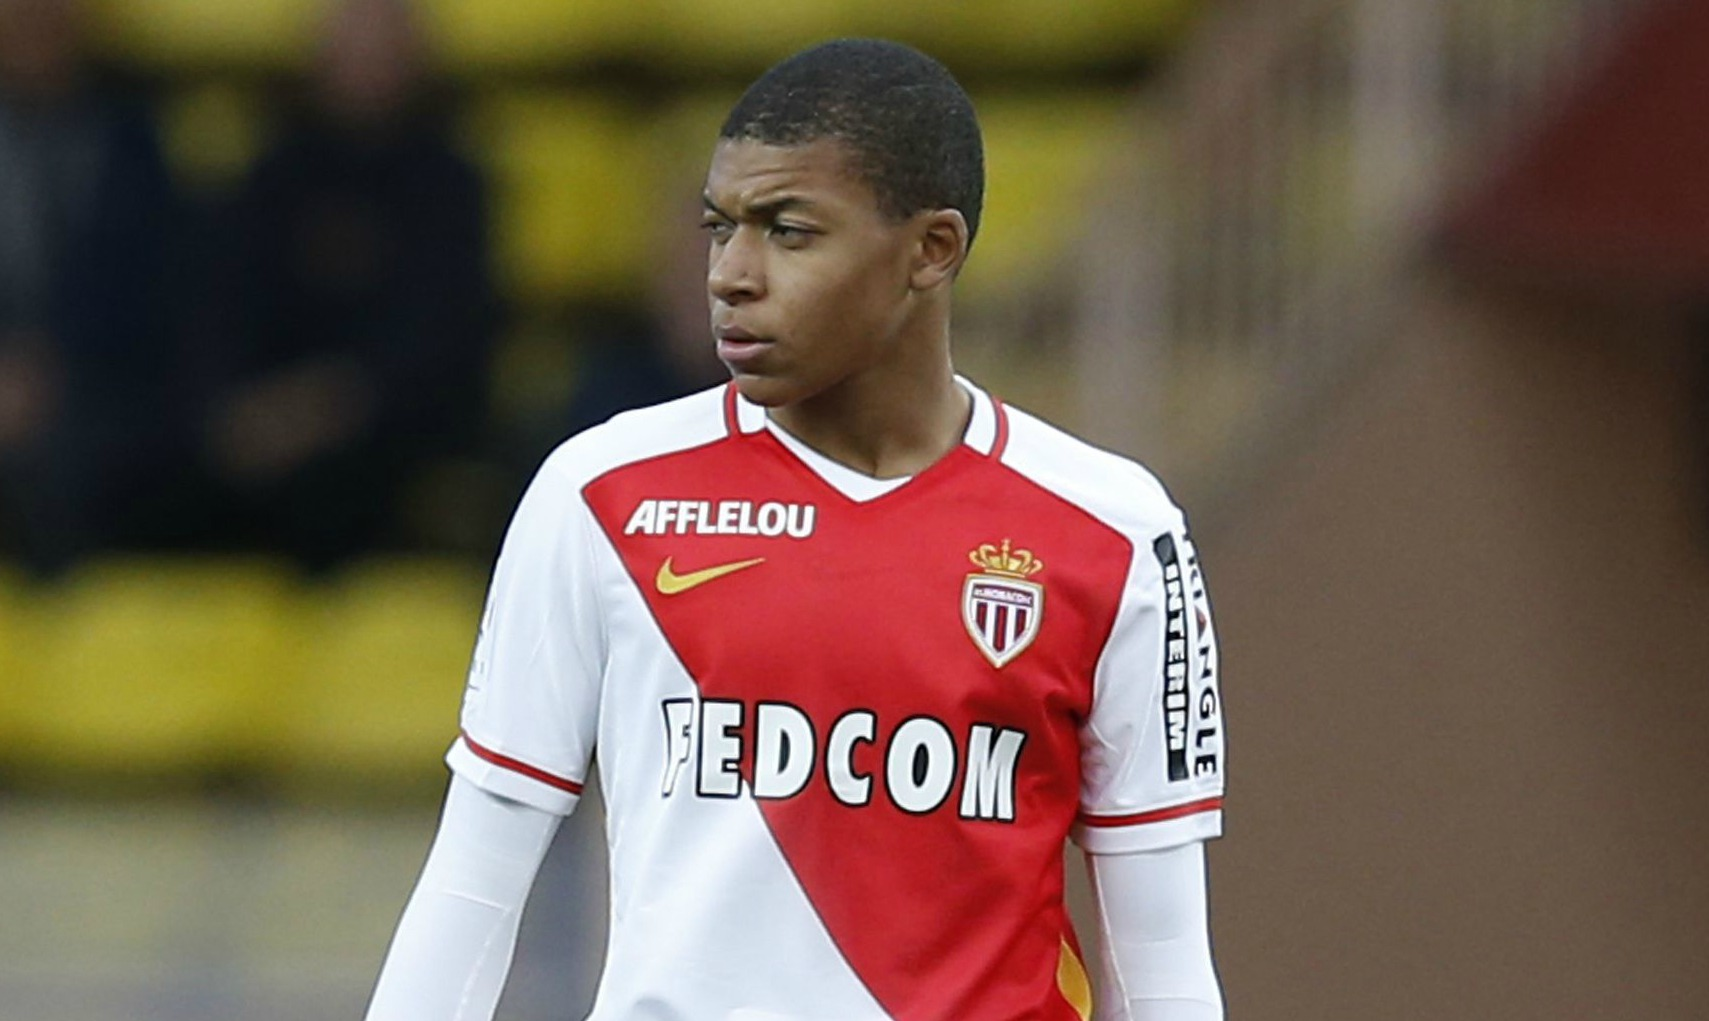 Kylian Mbappe Has A Long Way To Go Before He Can Be Called World Class